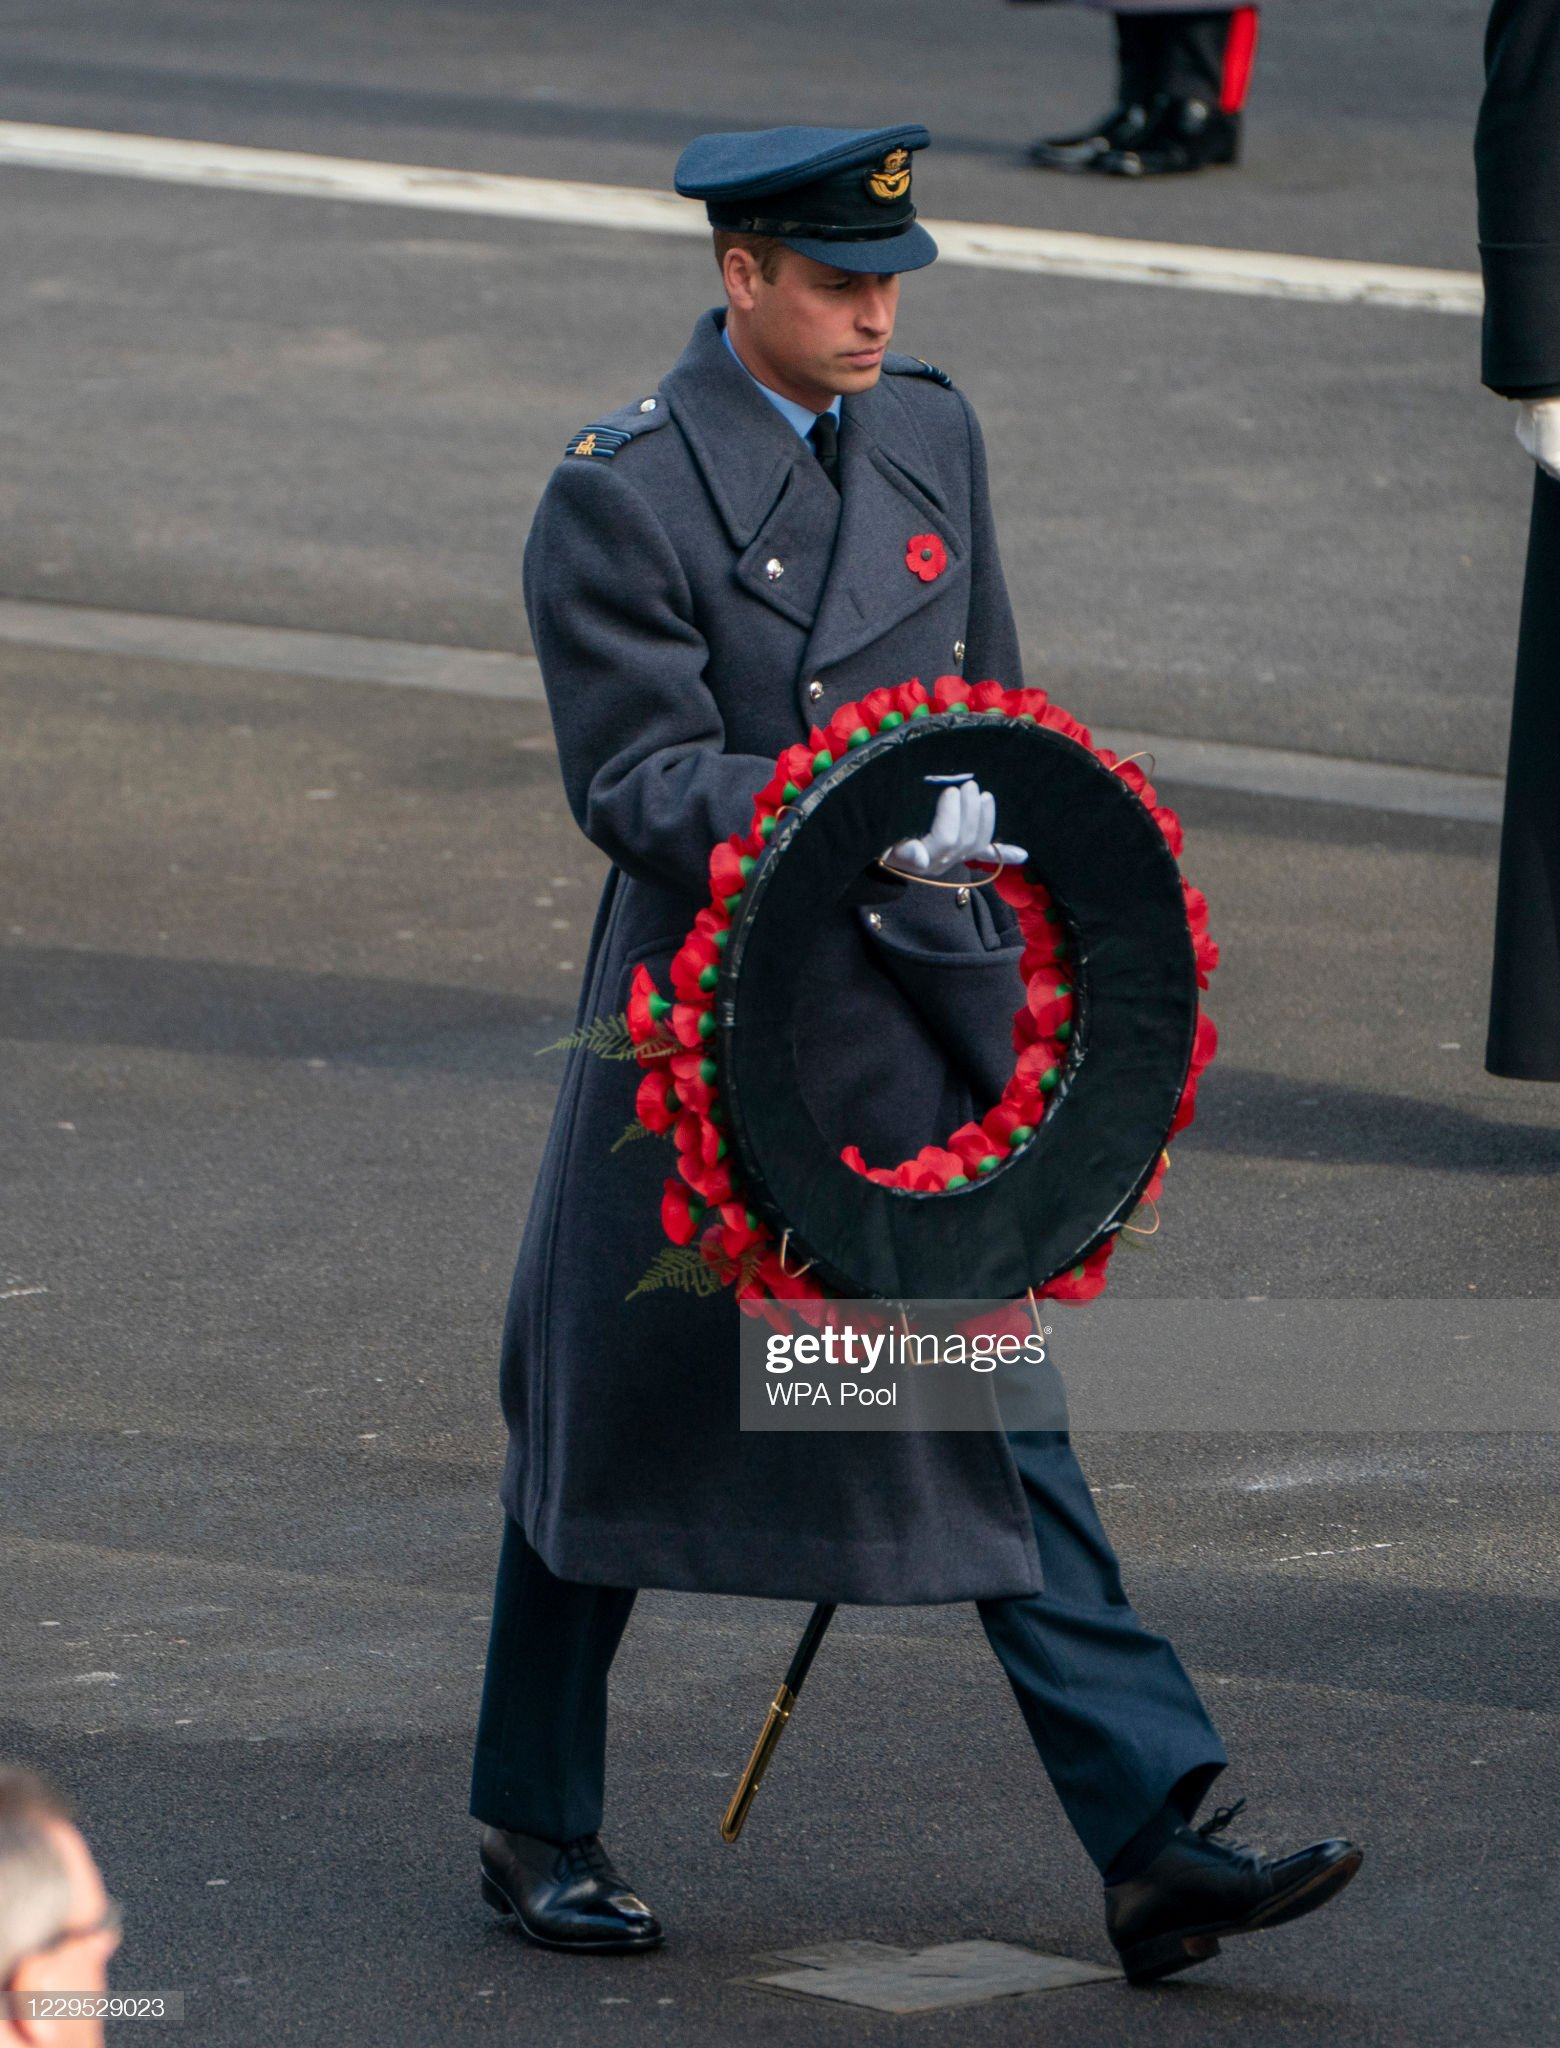 https://media.gettyimages.com/photos/prince-william-duke-of-cambridge-attends-the-national-service-of-at-picture-id1229529023?s=2048x2048